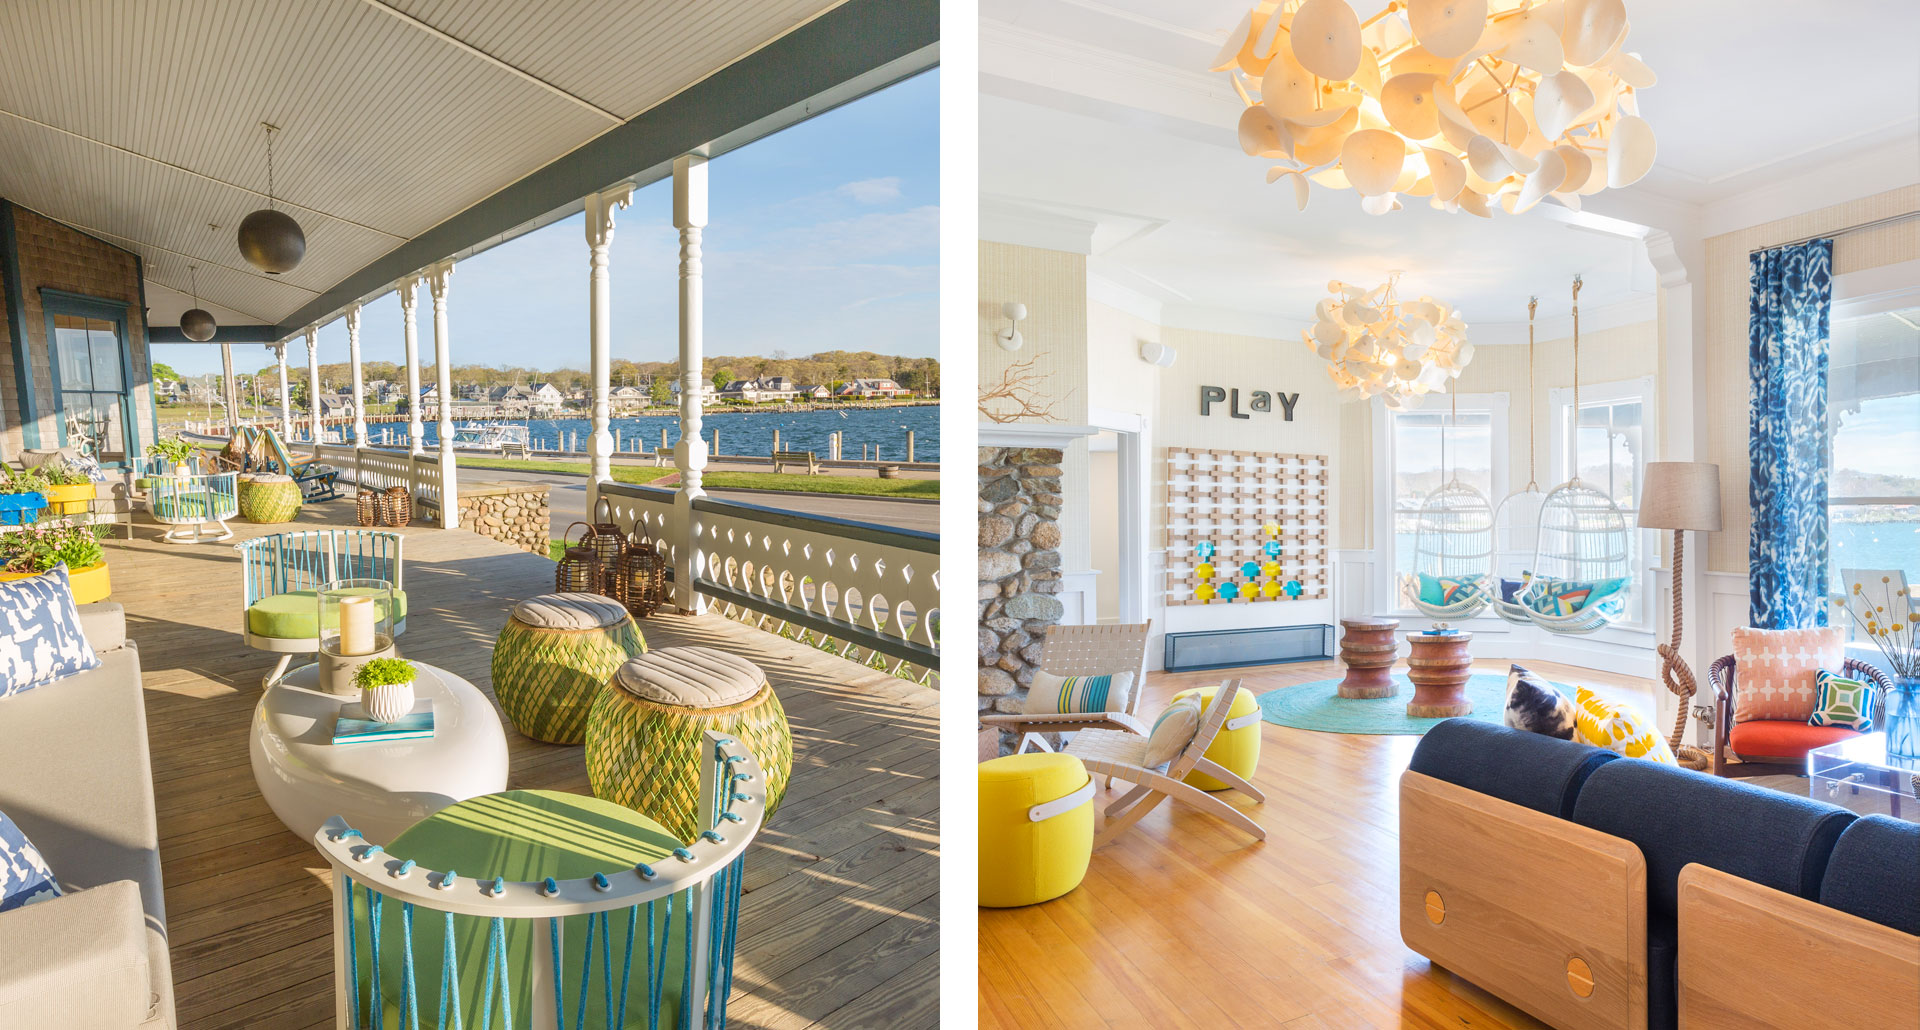 Summercamp Hotel - boutique hotel in Martha's Vineyard